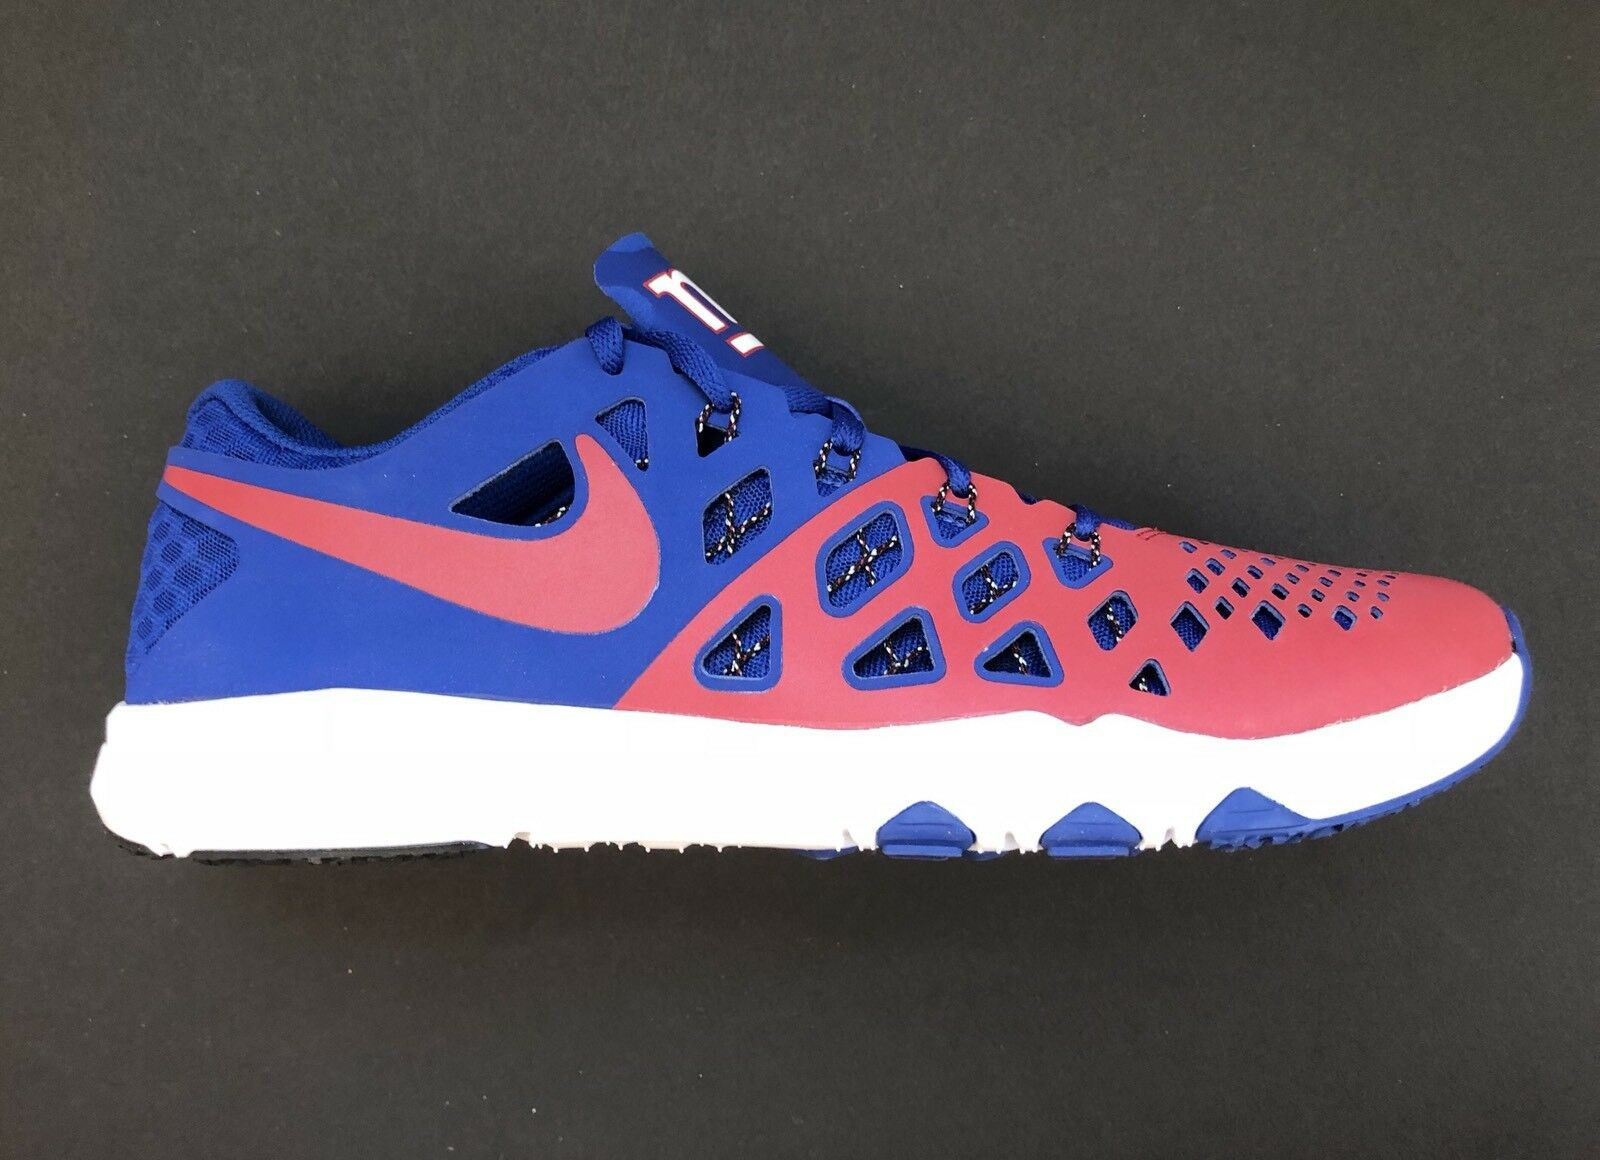 Nike New York Giants Speed Train 4 AMP Limited Edition Shows 848587-610